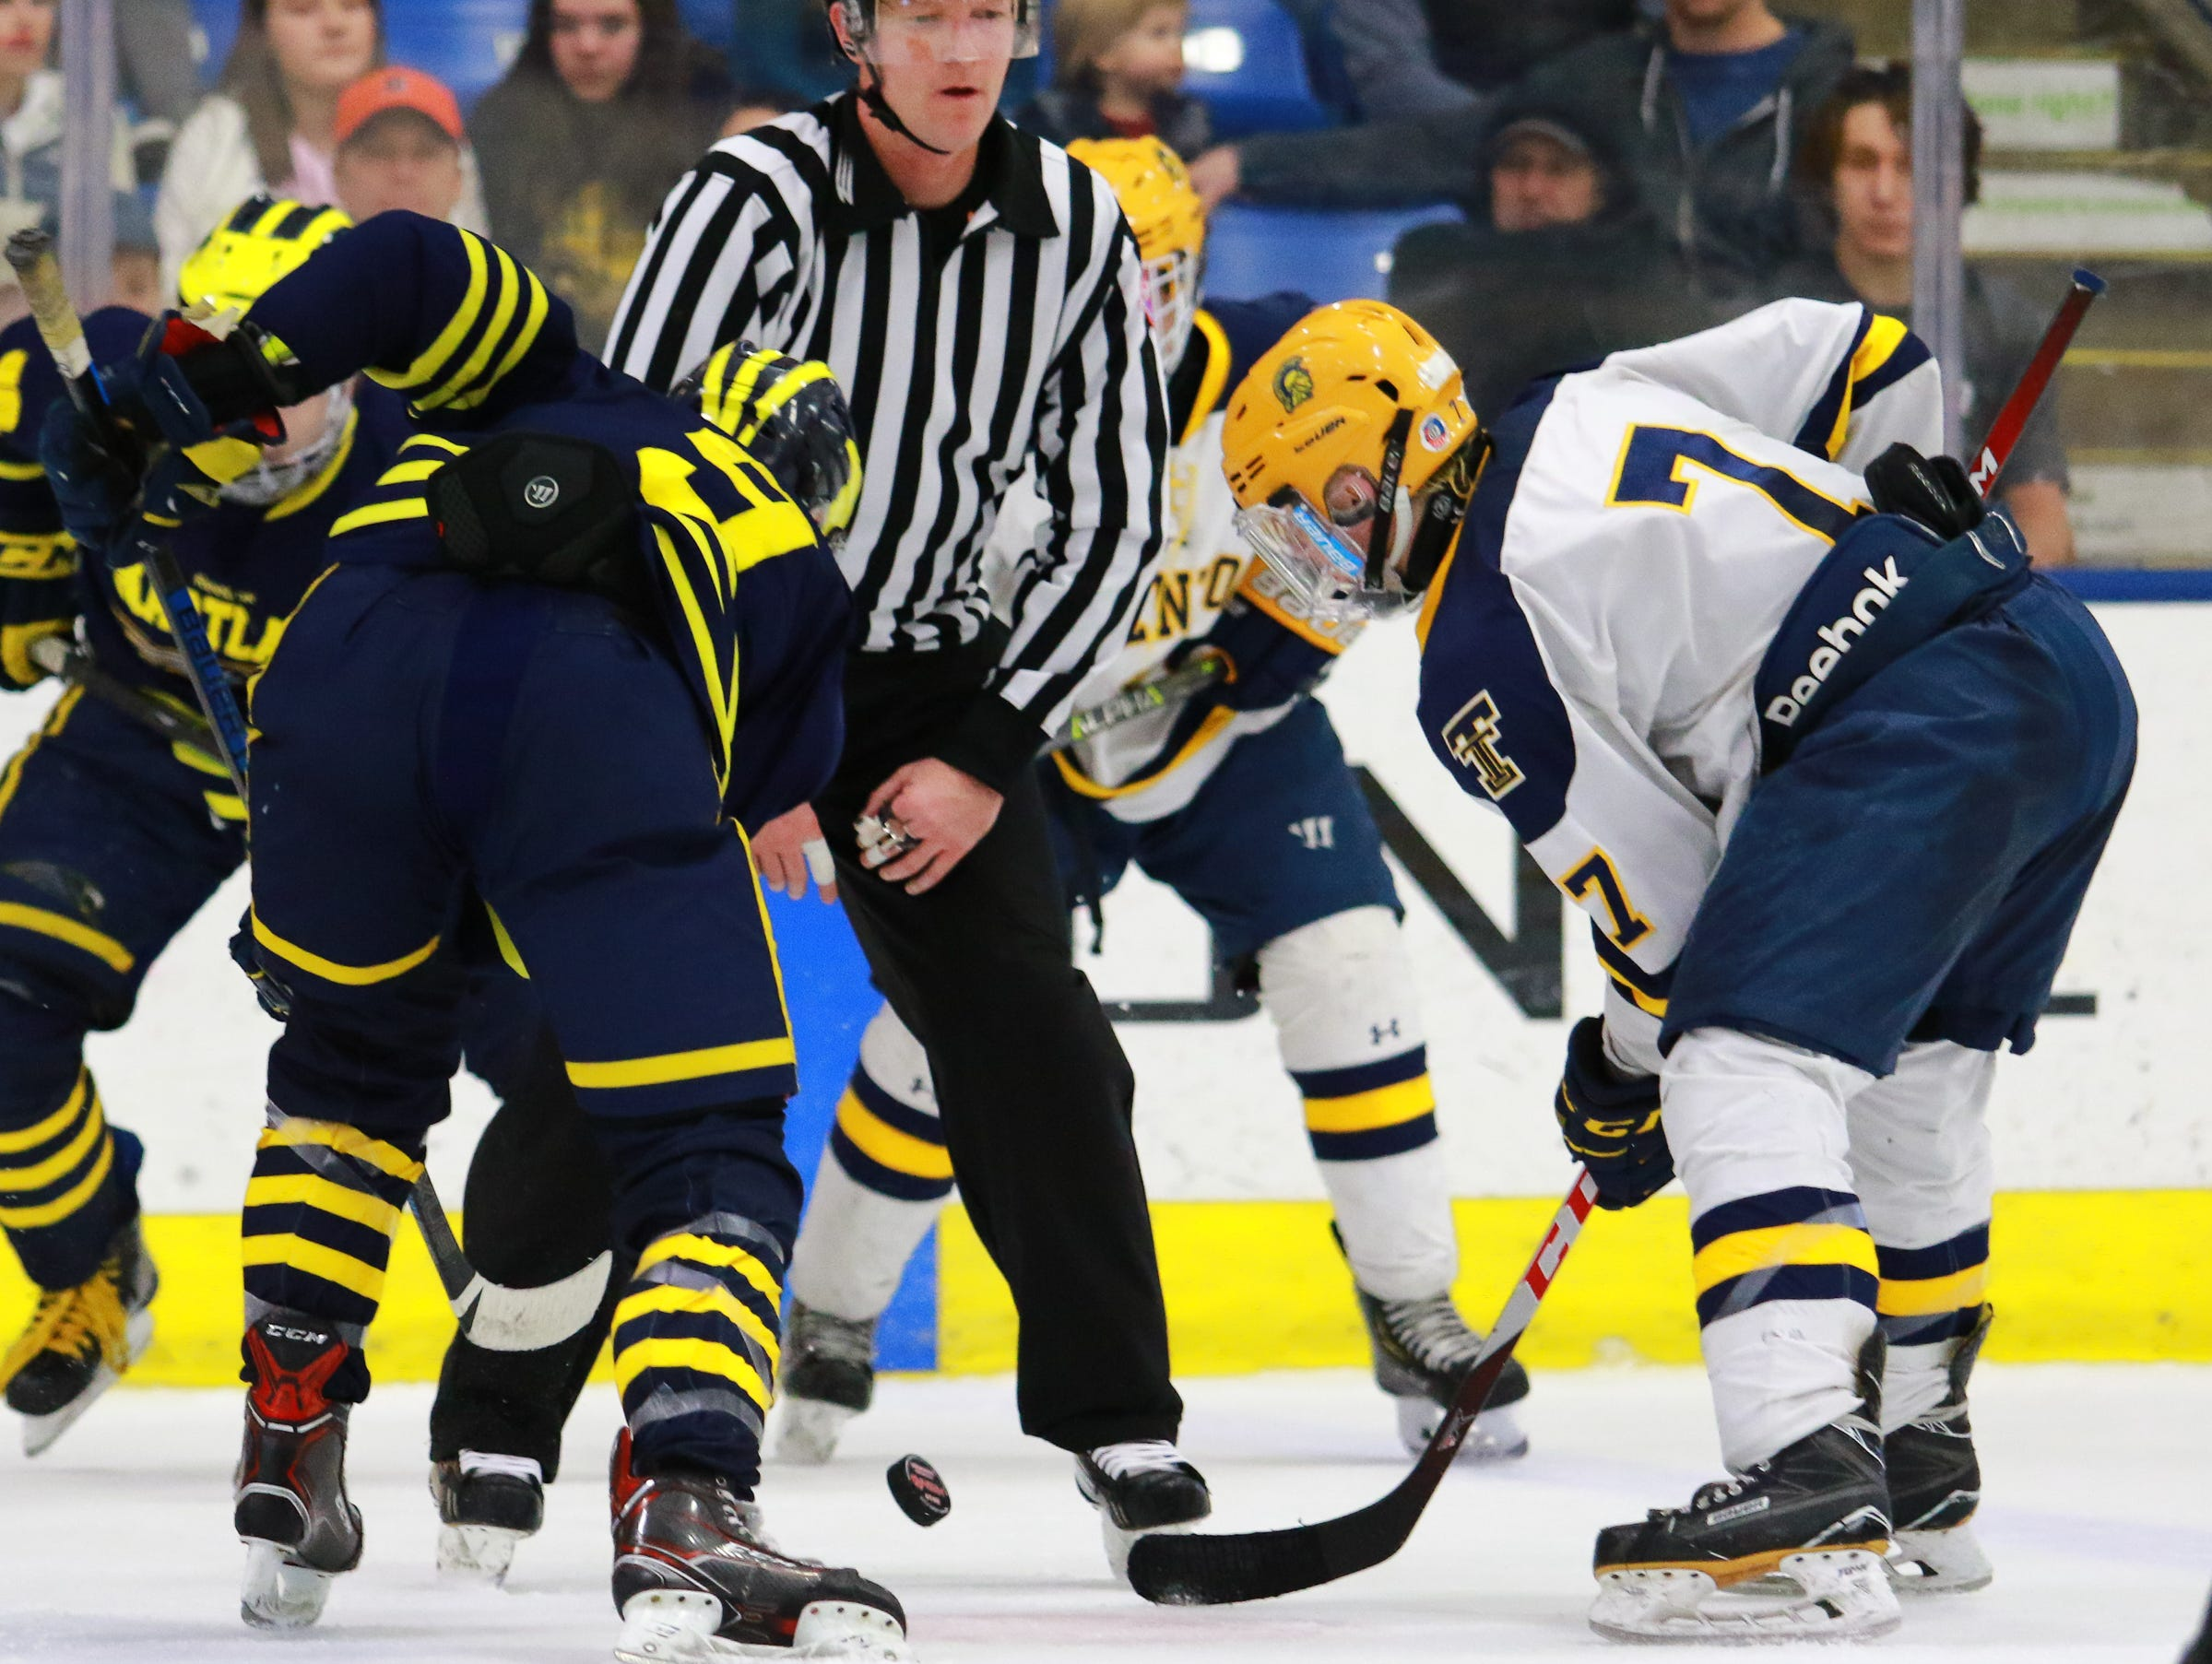 Hartland's Joey Larson (9) faces off against Gregory Obrycki (7) in a 4-0 victory over Trenton in the state Division 2 championship hockey game on Saturday, March 9, 2019 at USA Hockey Arena.